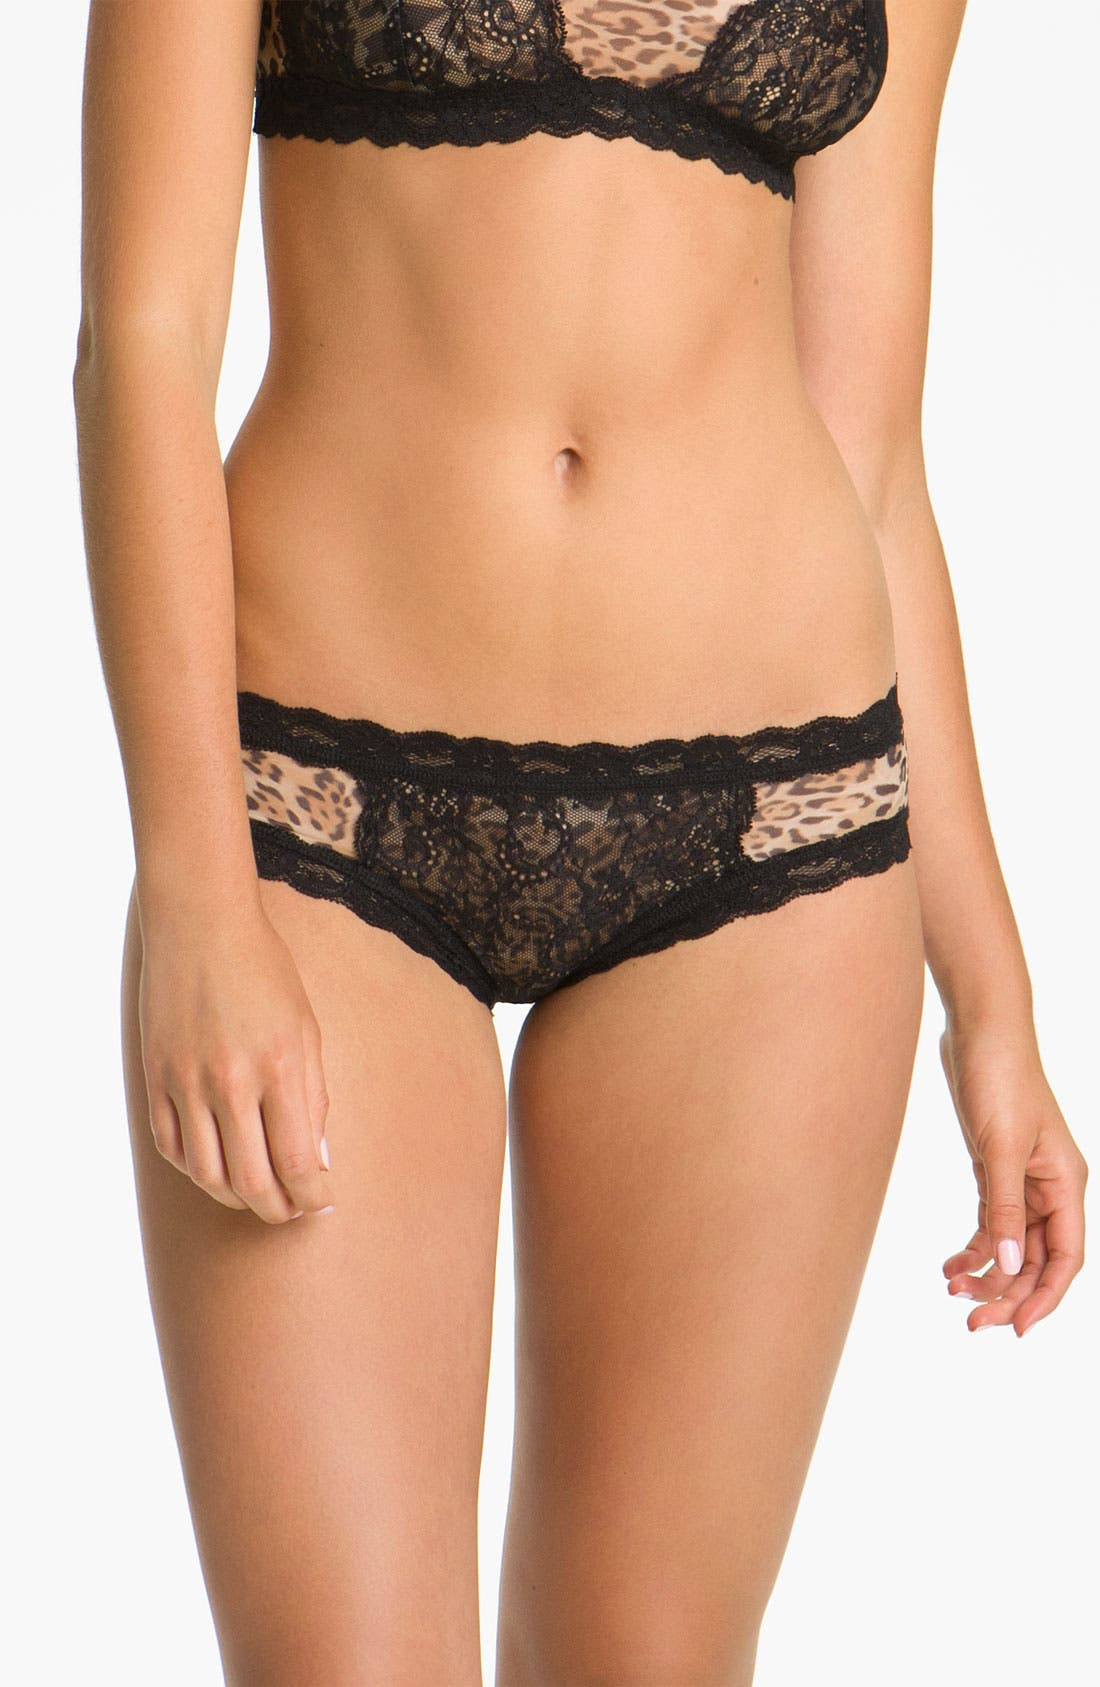 Alternate Image 1 Selected - Hanky Panky 'Nouveau Sheer Enchantment' Hipster Panties